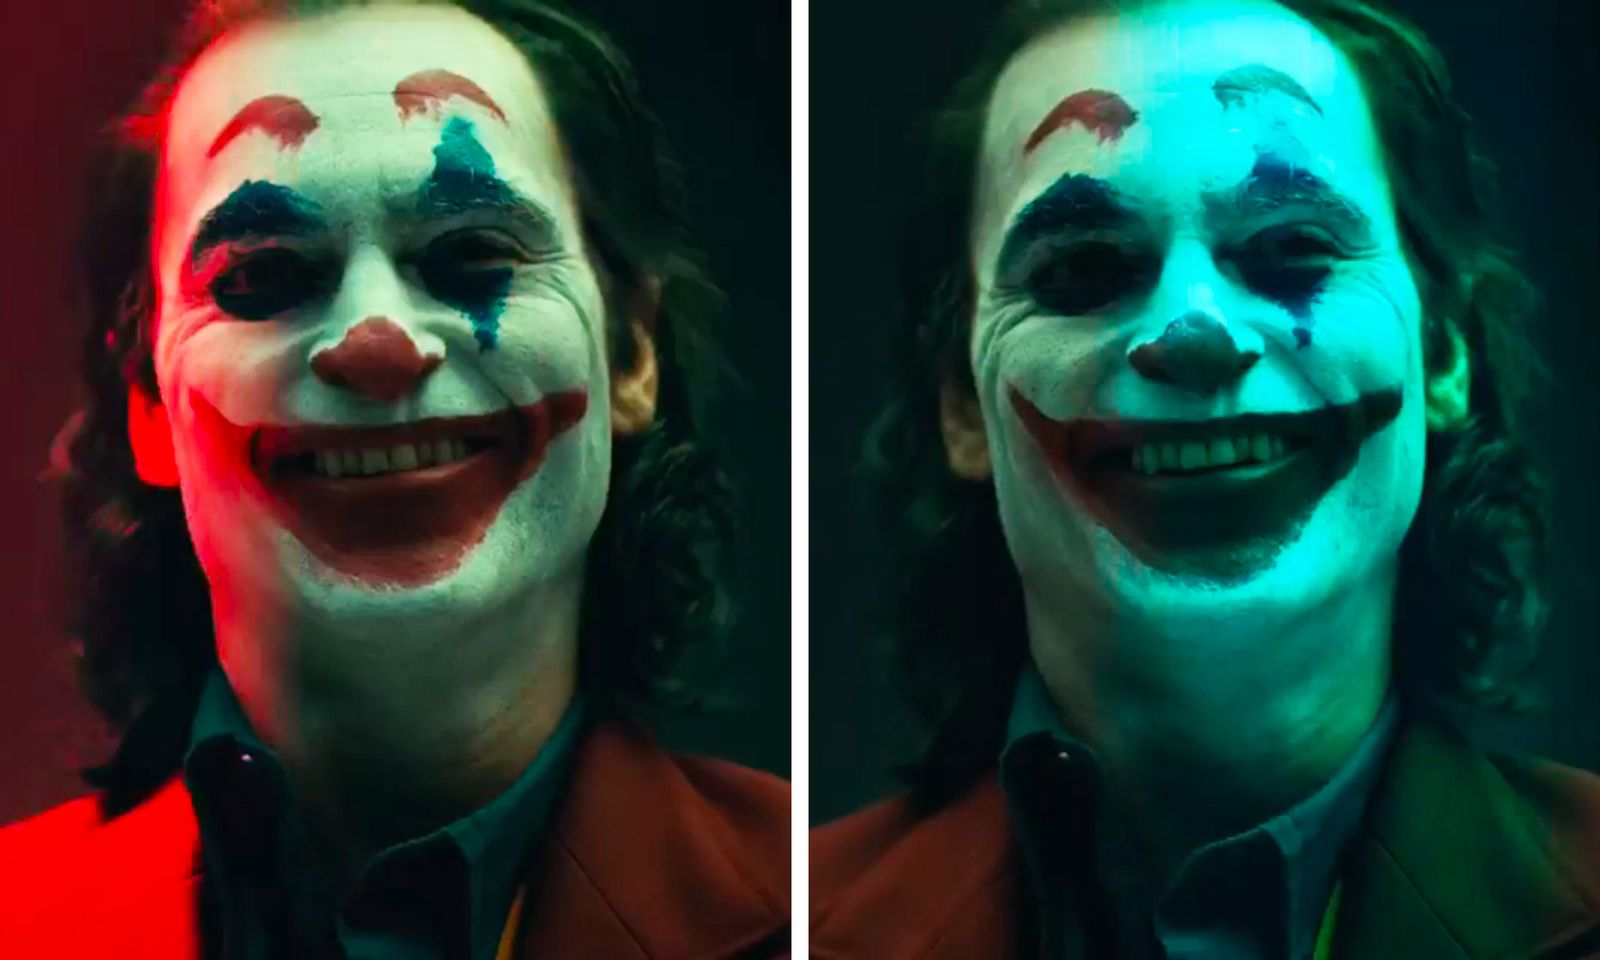 joaquin phoenix the joker A$AP Rocky Millie Bobby Brown Poppy